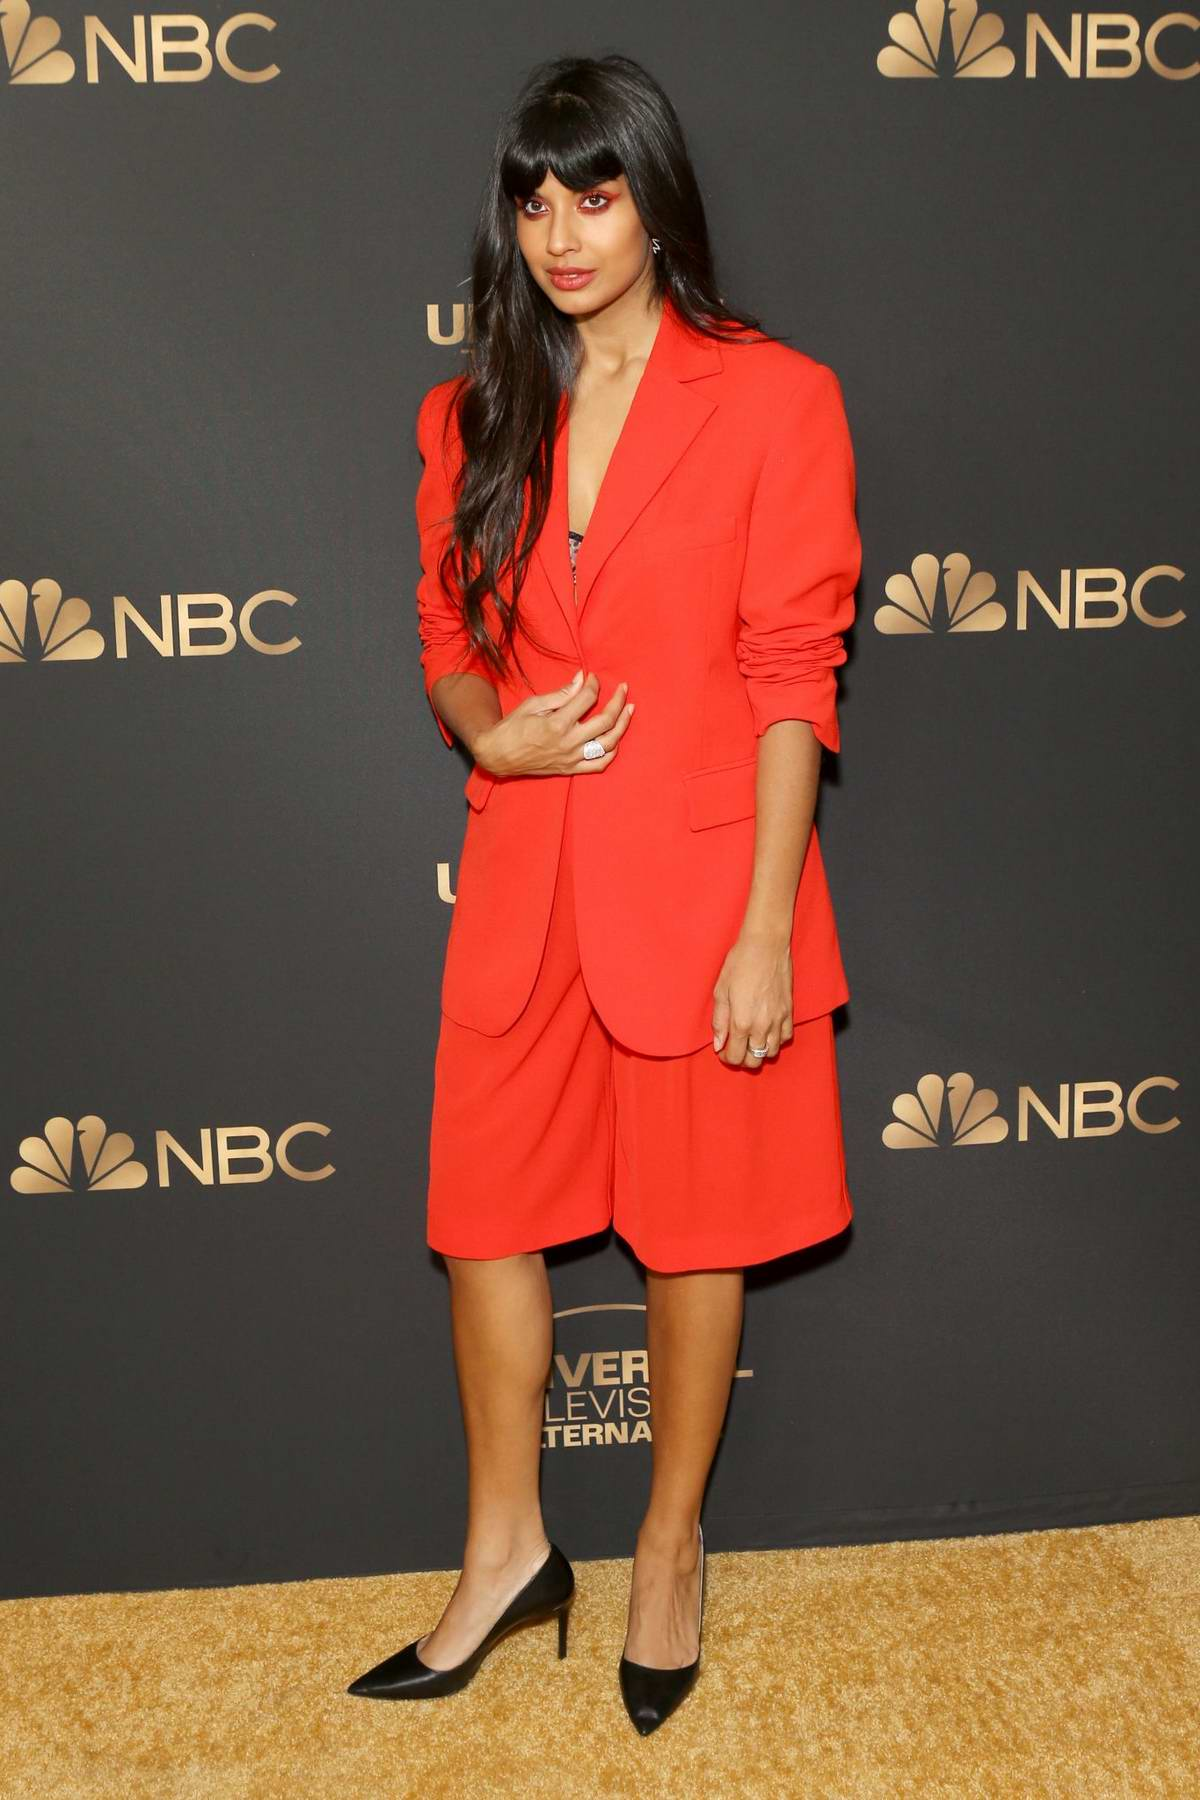 Jameela Jamil attends the NBC and Universal EMMY nominee celebration in West Hollywood, Los Angeles